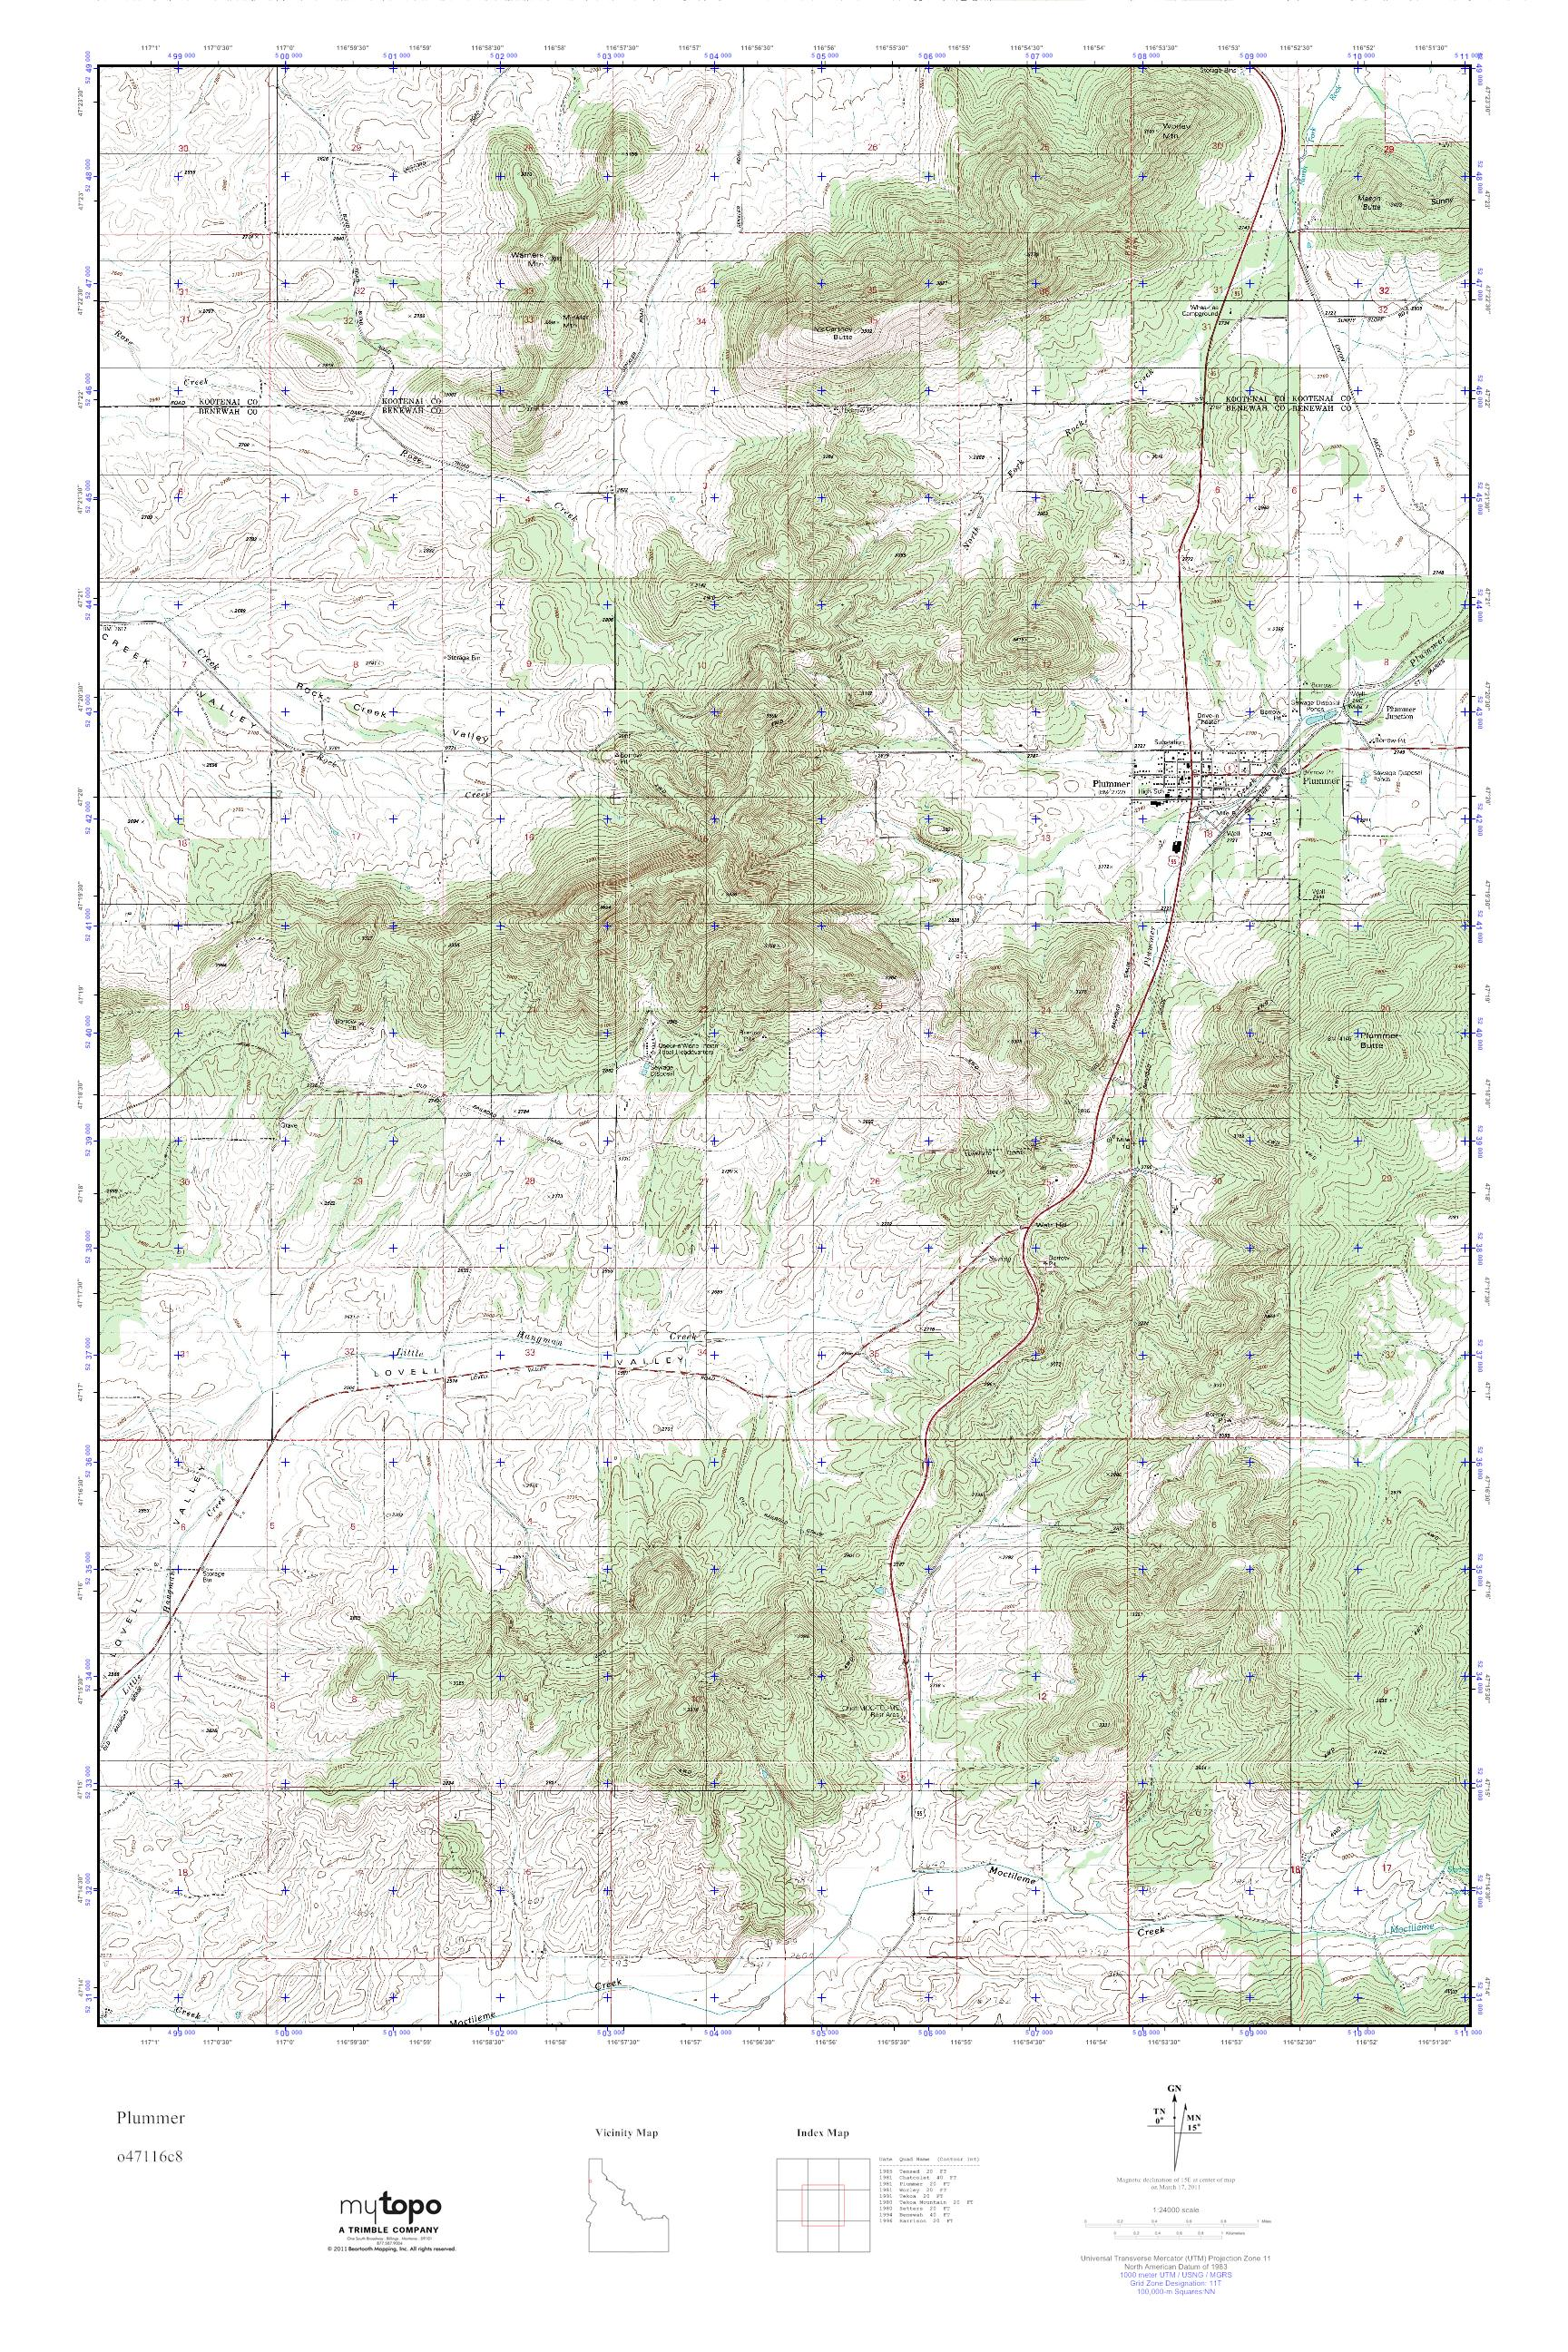 Plummer Idaho Map.Mytopo Plummer Idaho Usgs Quad Topo Map